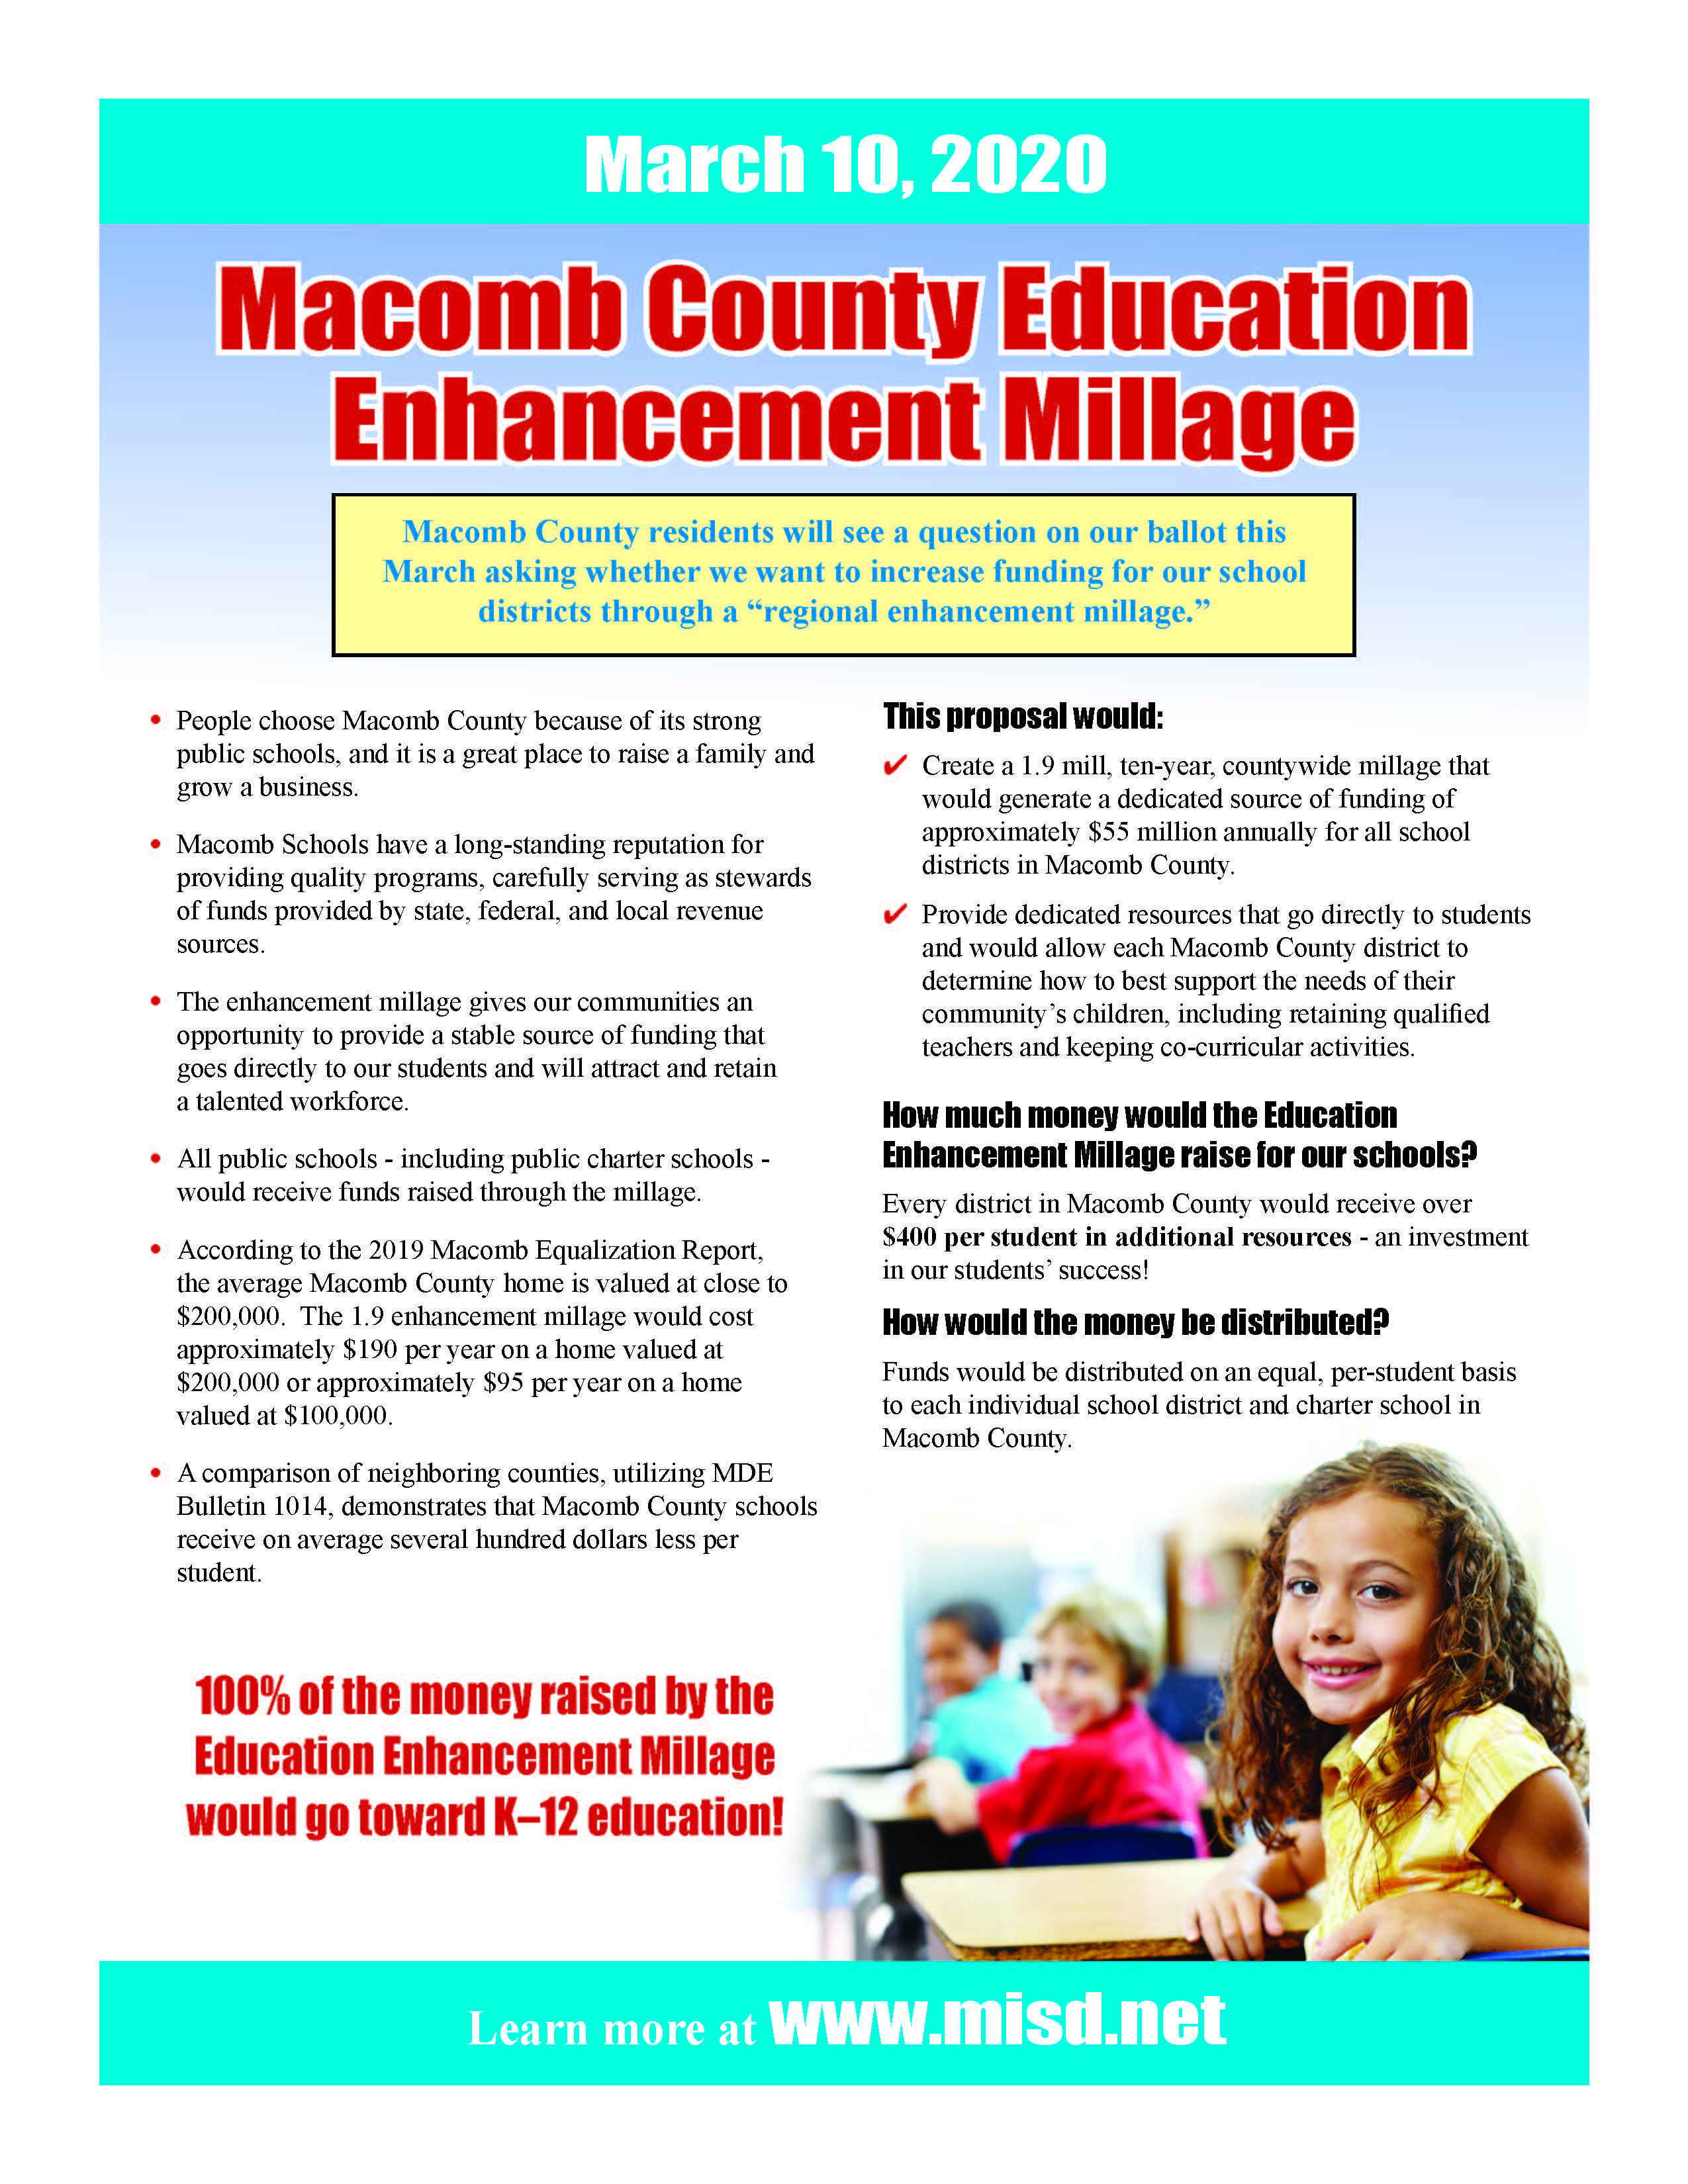 Macomb County Enhancement Millage